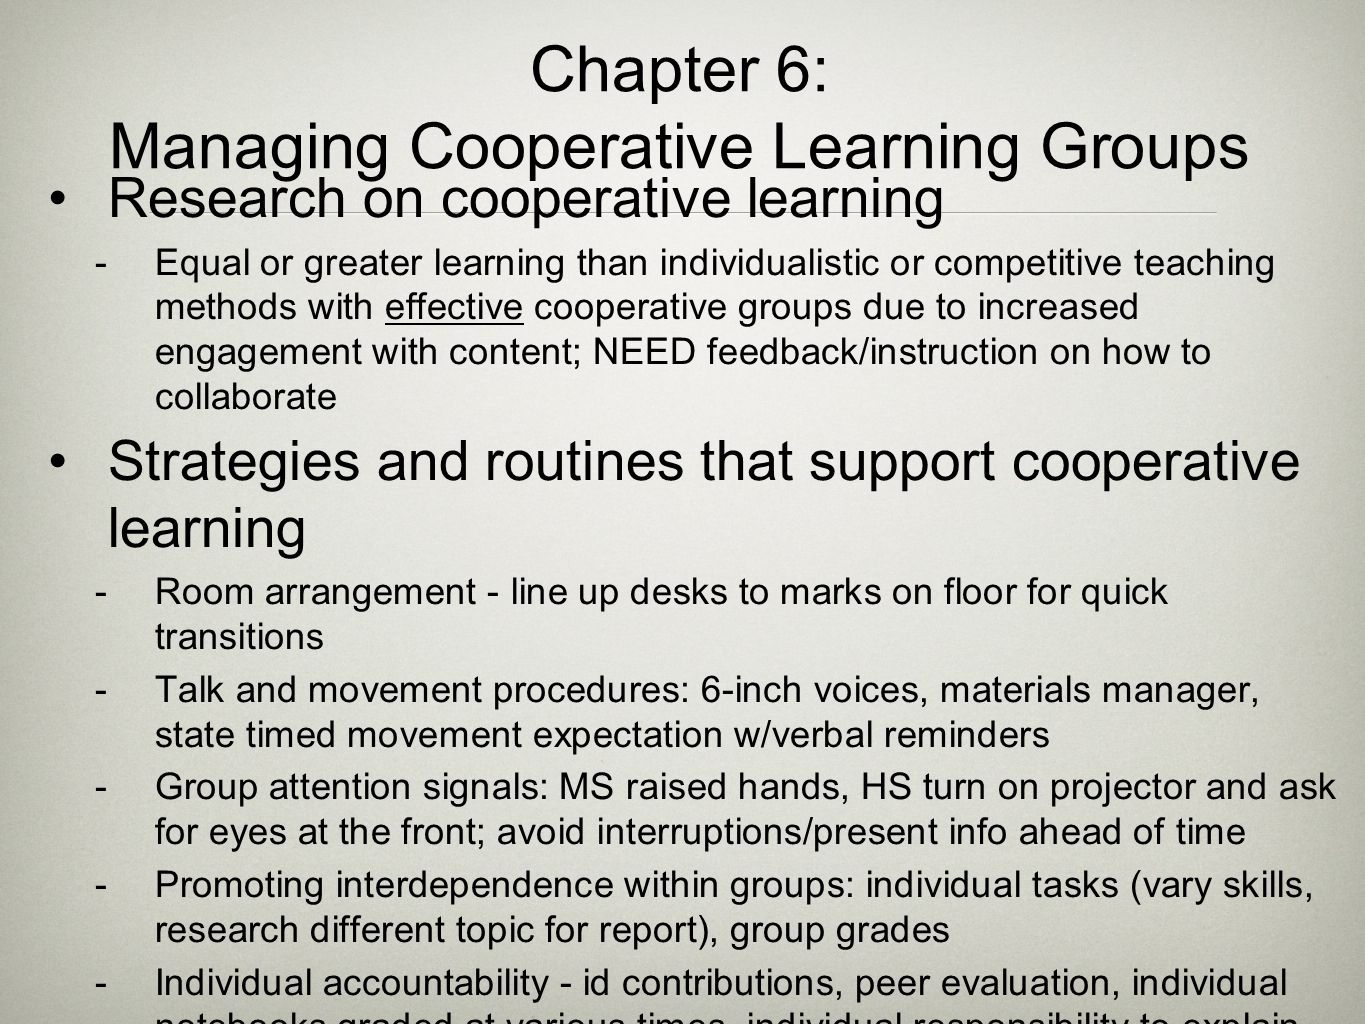 Chapter 6: Managing Cooperative Learning Groups Research on cooperative learning  Equal or greater learning than individualistic or competitive teach